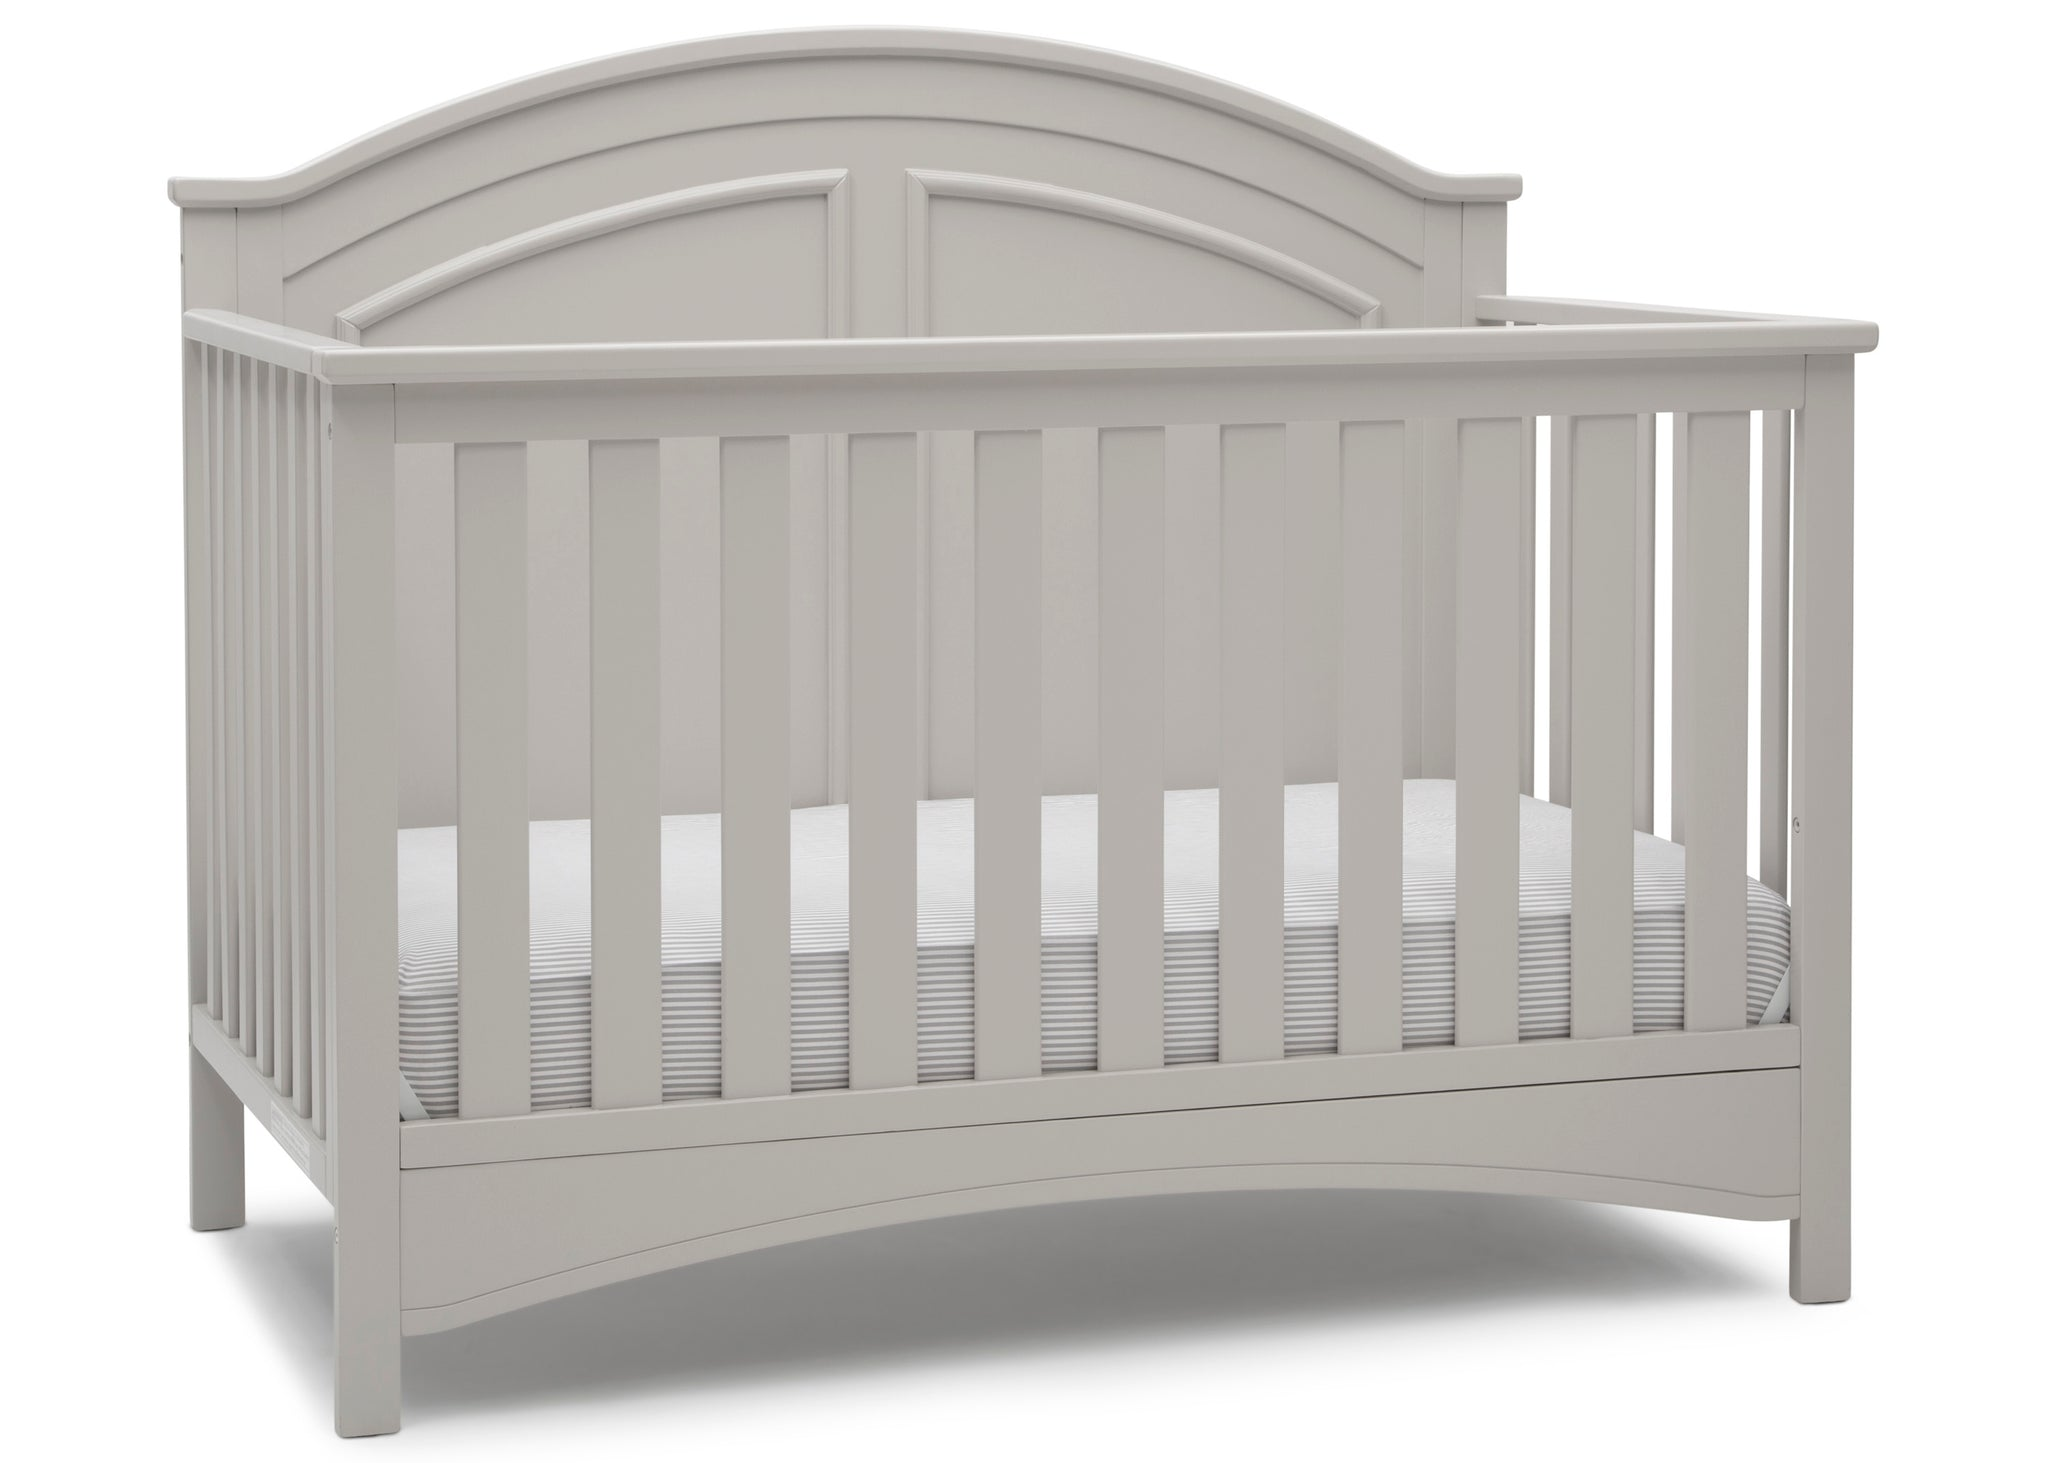 Delta Children Moonstruck Grey (1351) Perry 6-in-1 Convertible Crib, Right Crib Silo View